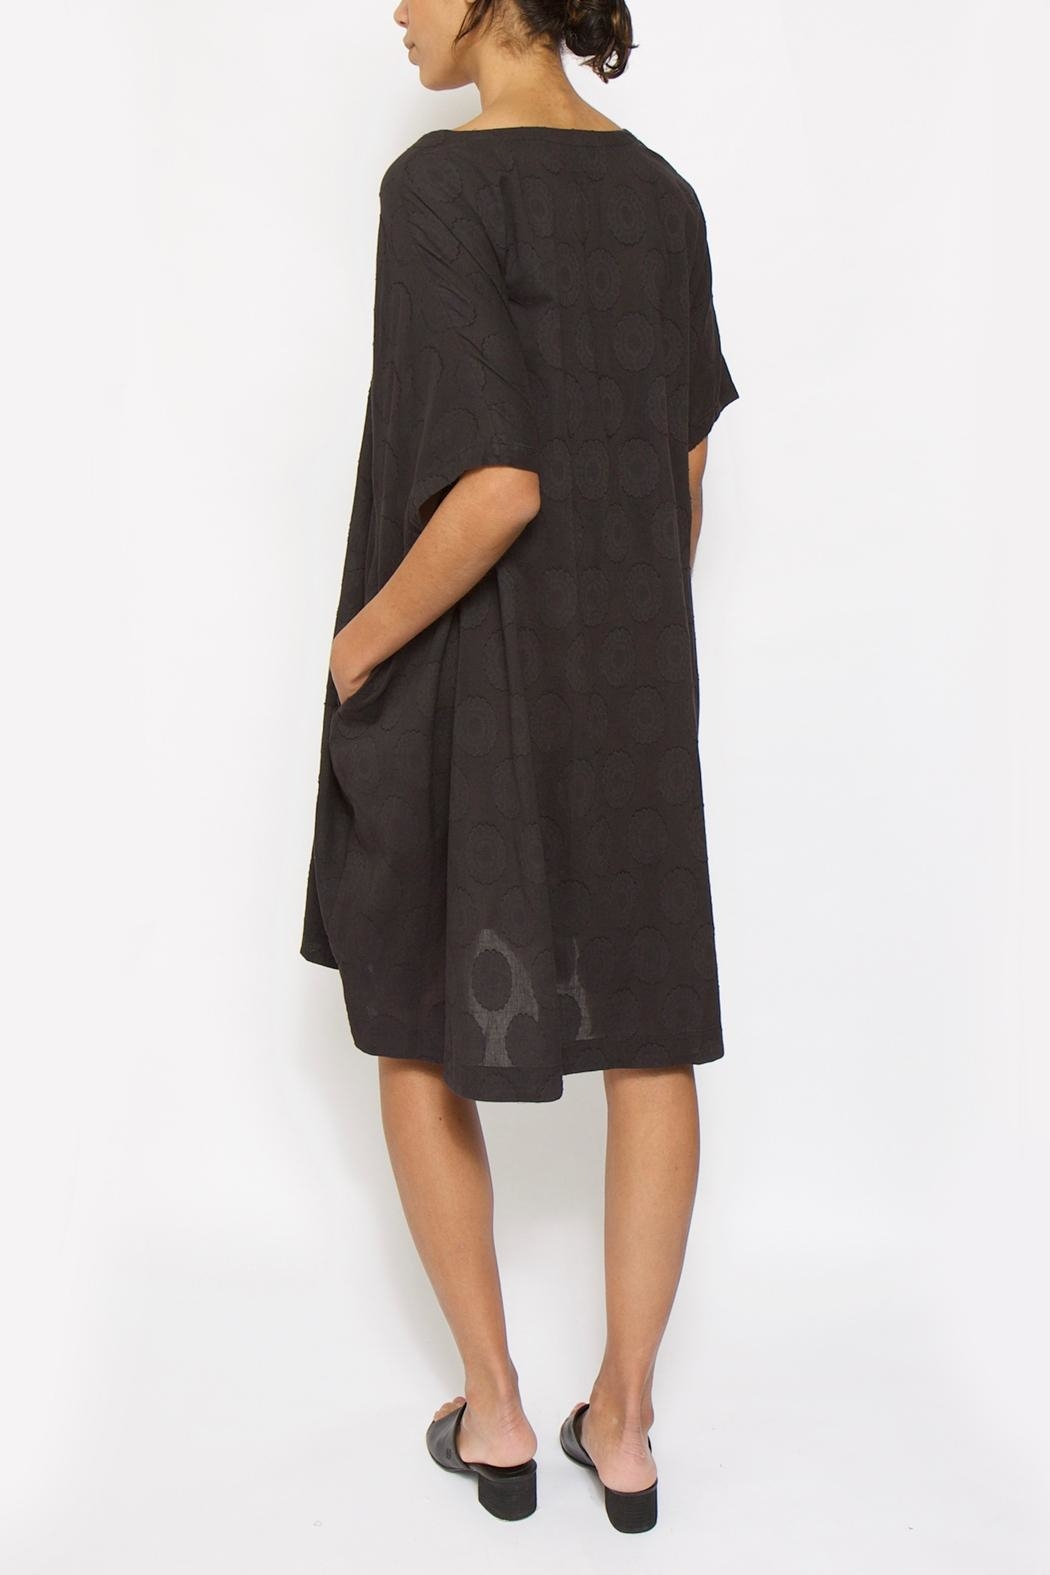 Moyuru Black Dot Dress - Side Cropped Image